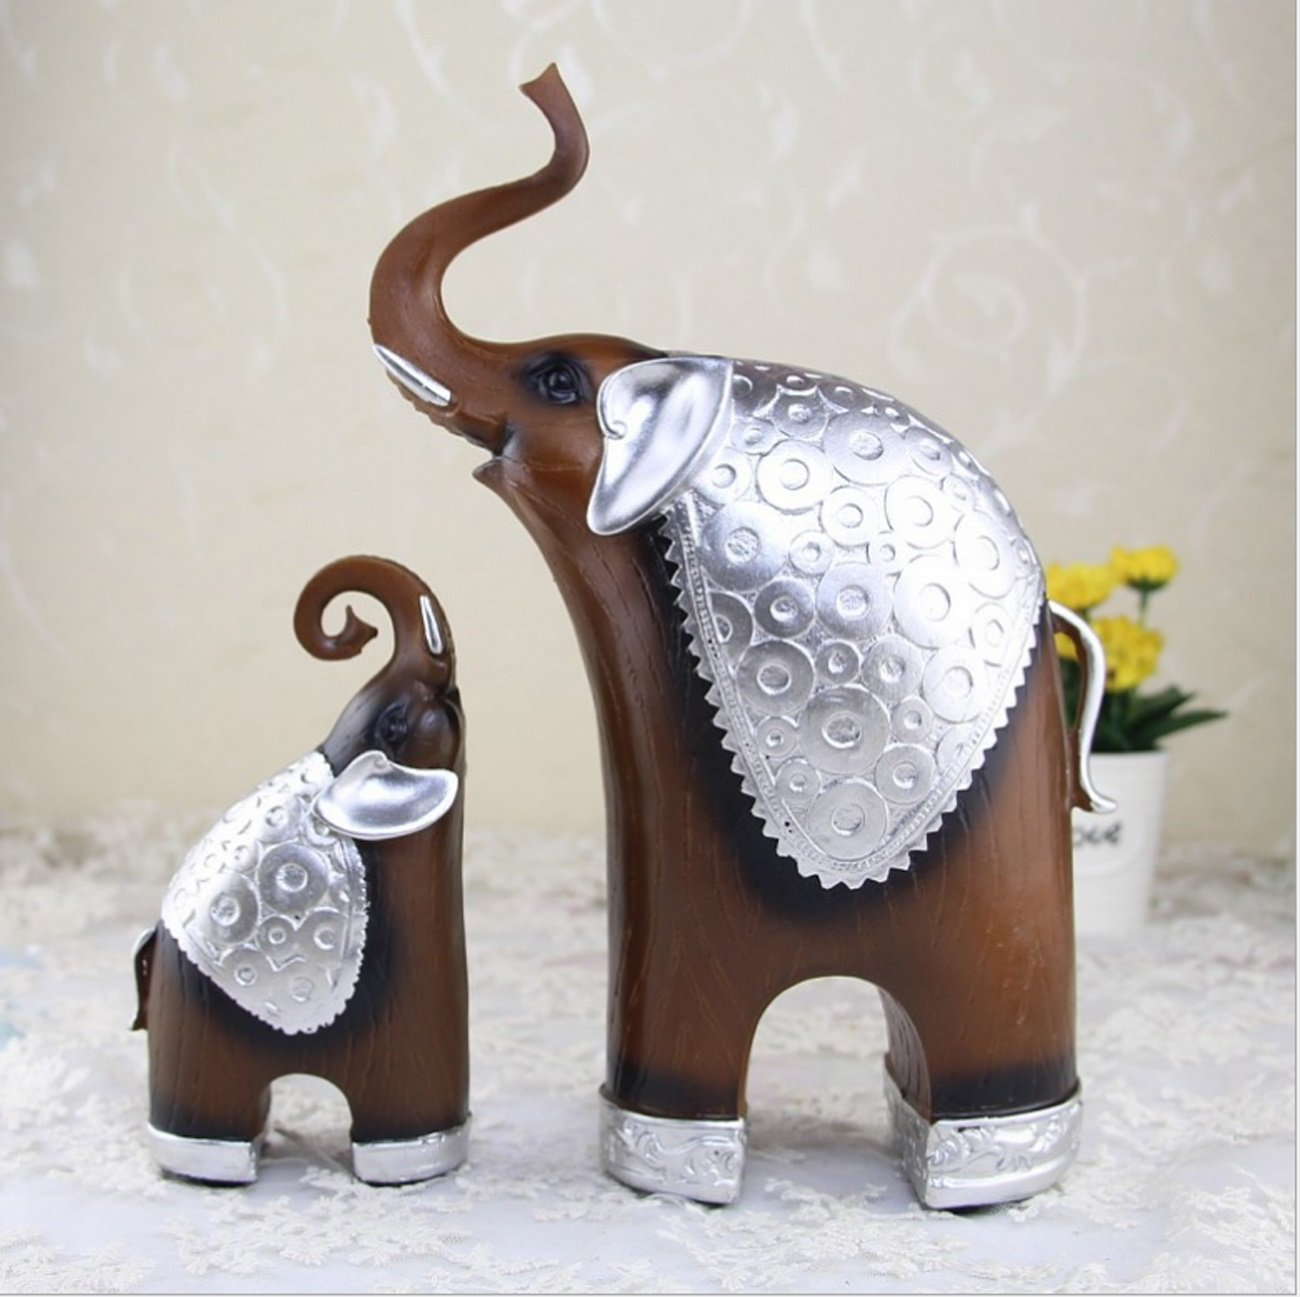 Living Room Home Furnishings Wood grain Elephant Ornaments Creative Resin Decorative Crafts by LHFJ (Image #3)